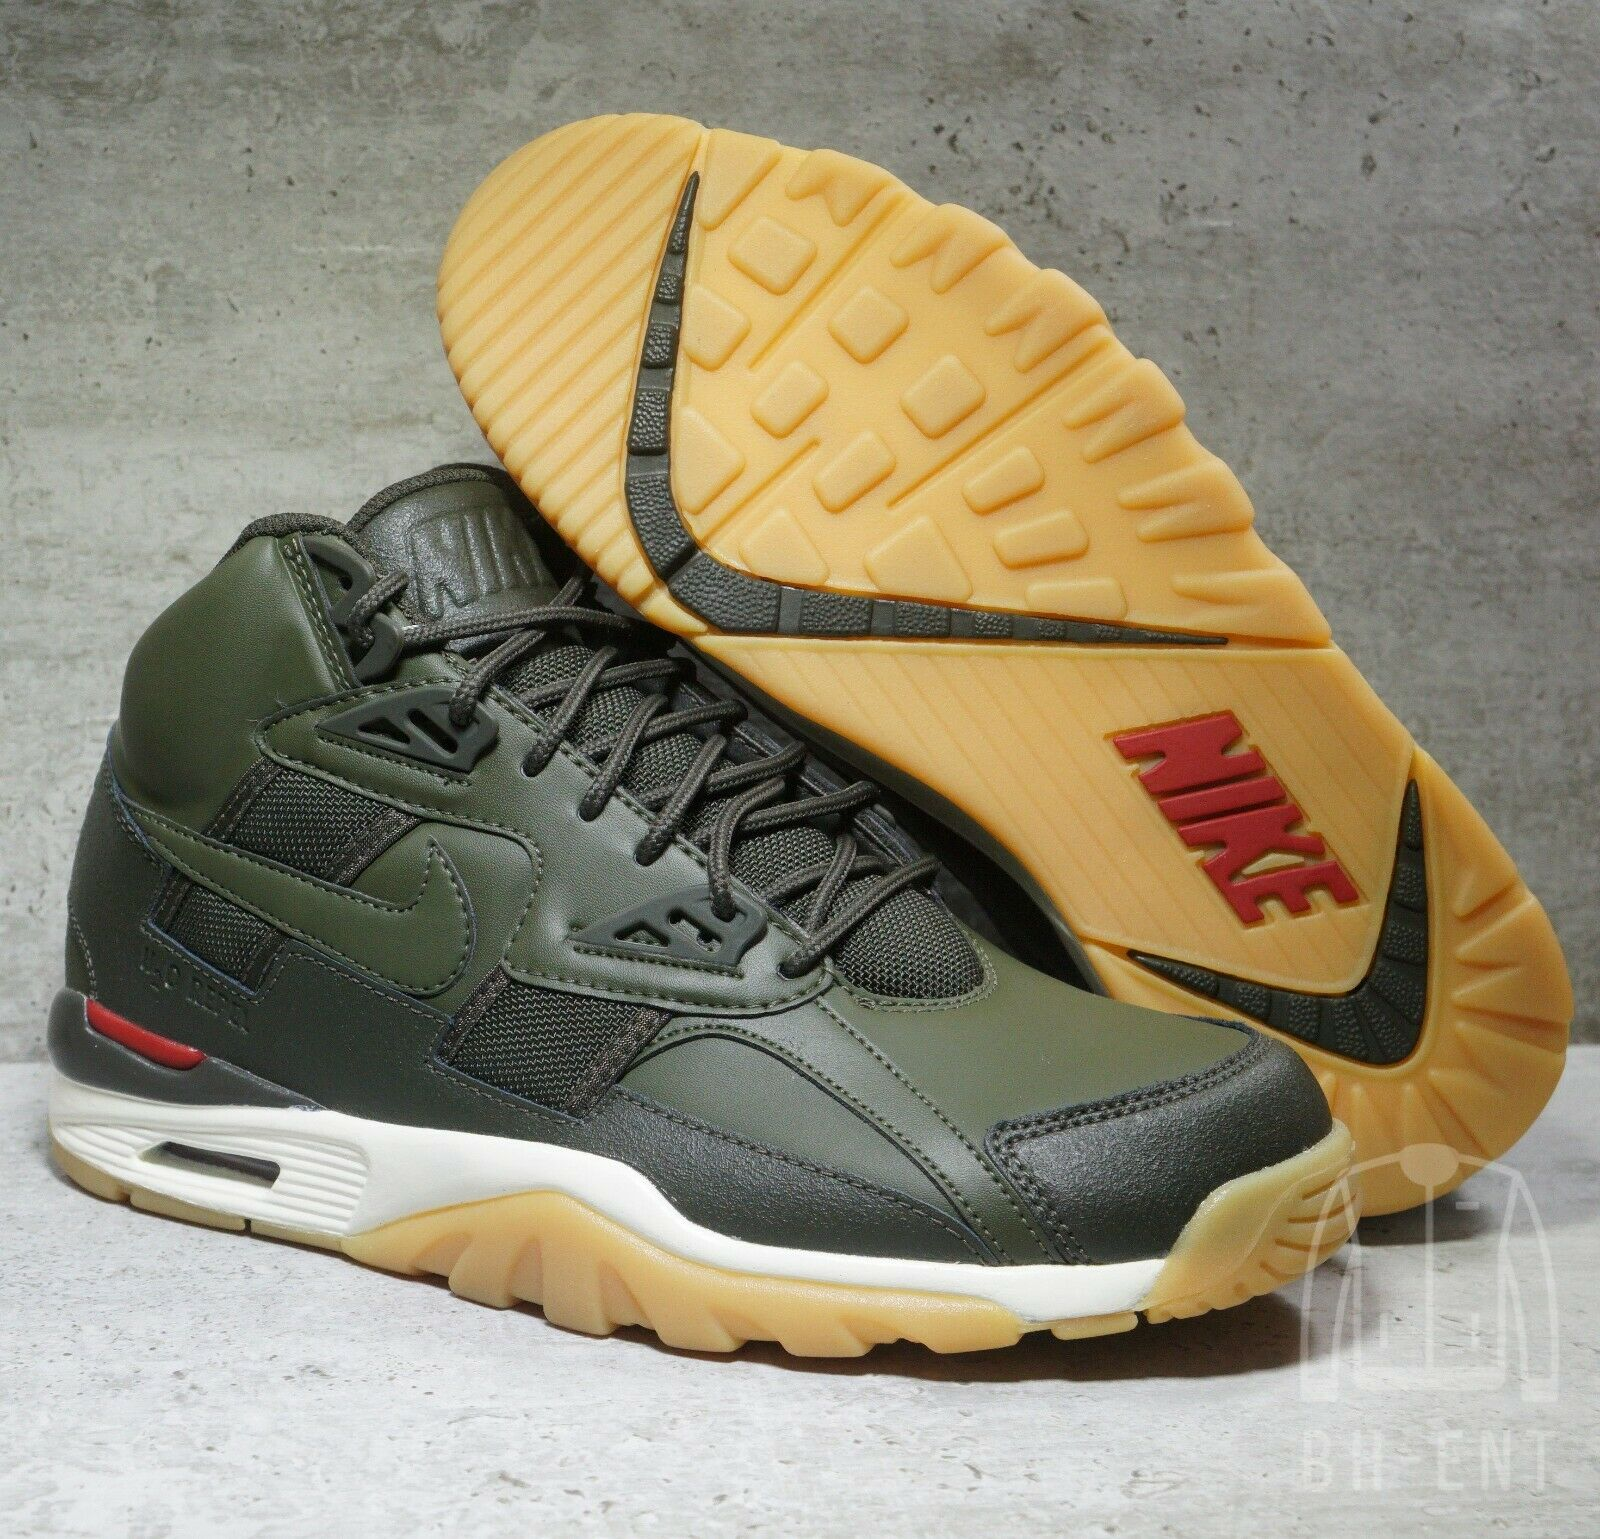 Nike Air Trainer SC Wntr Winter shoes AA1120-300 Cargo Khaki Olive Men's Size 8